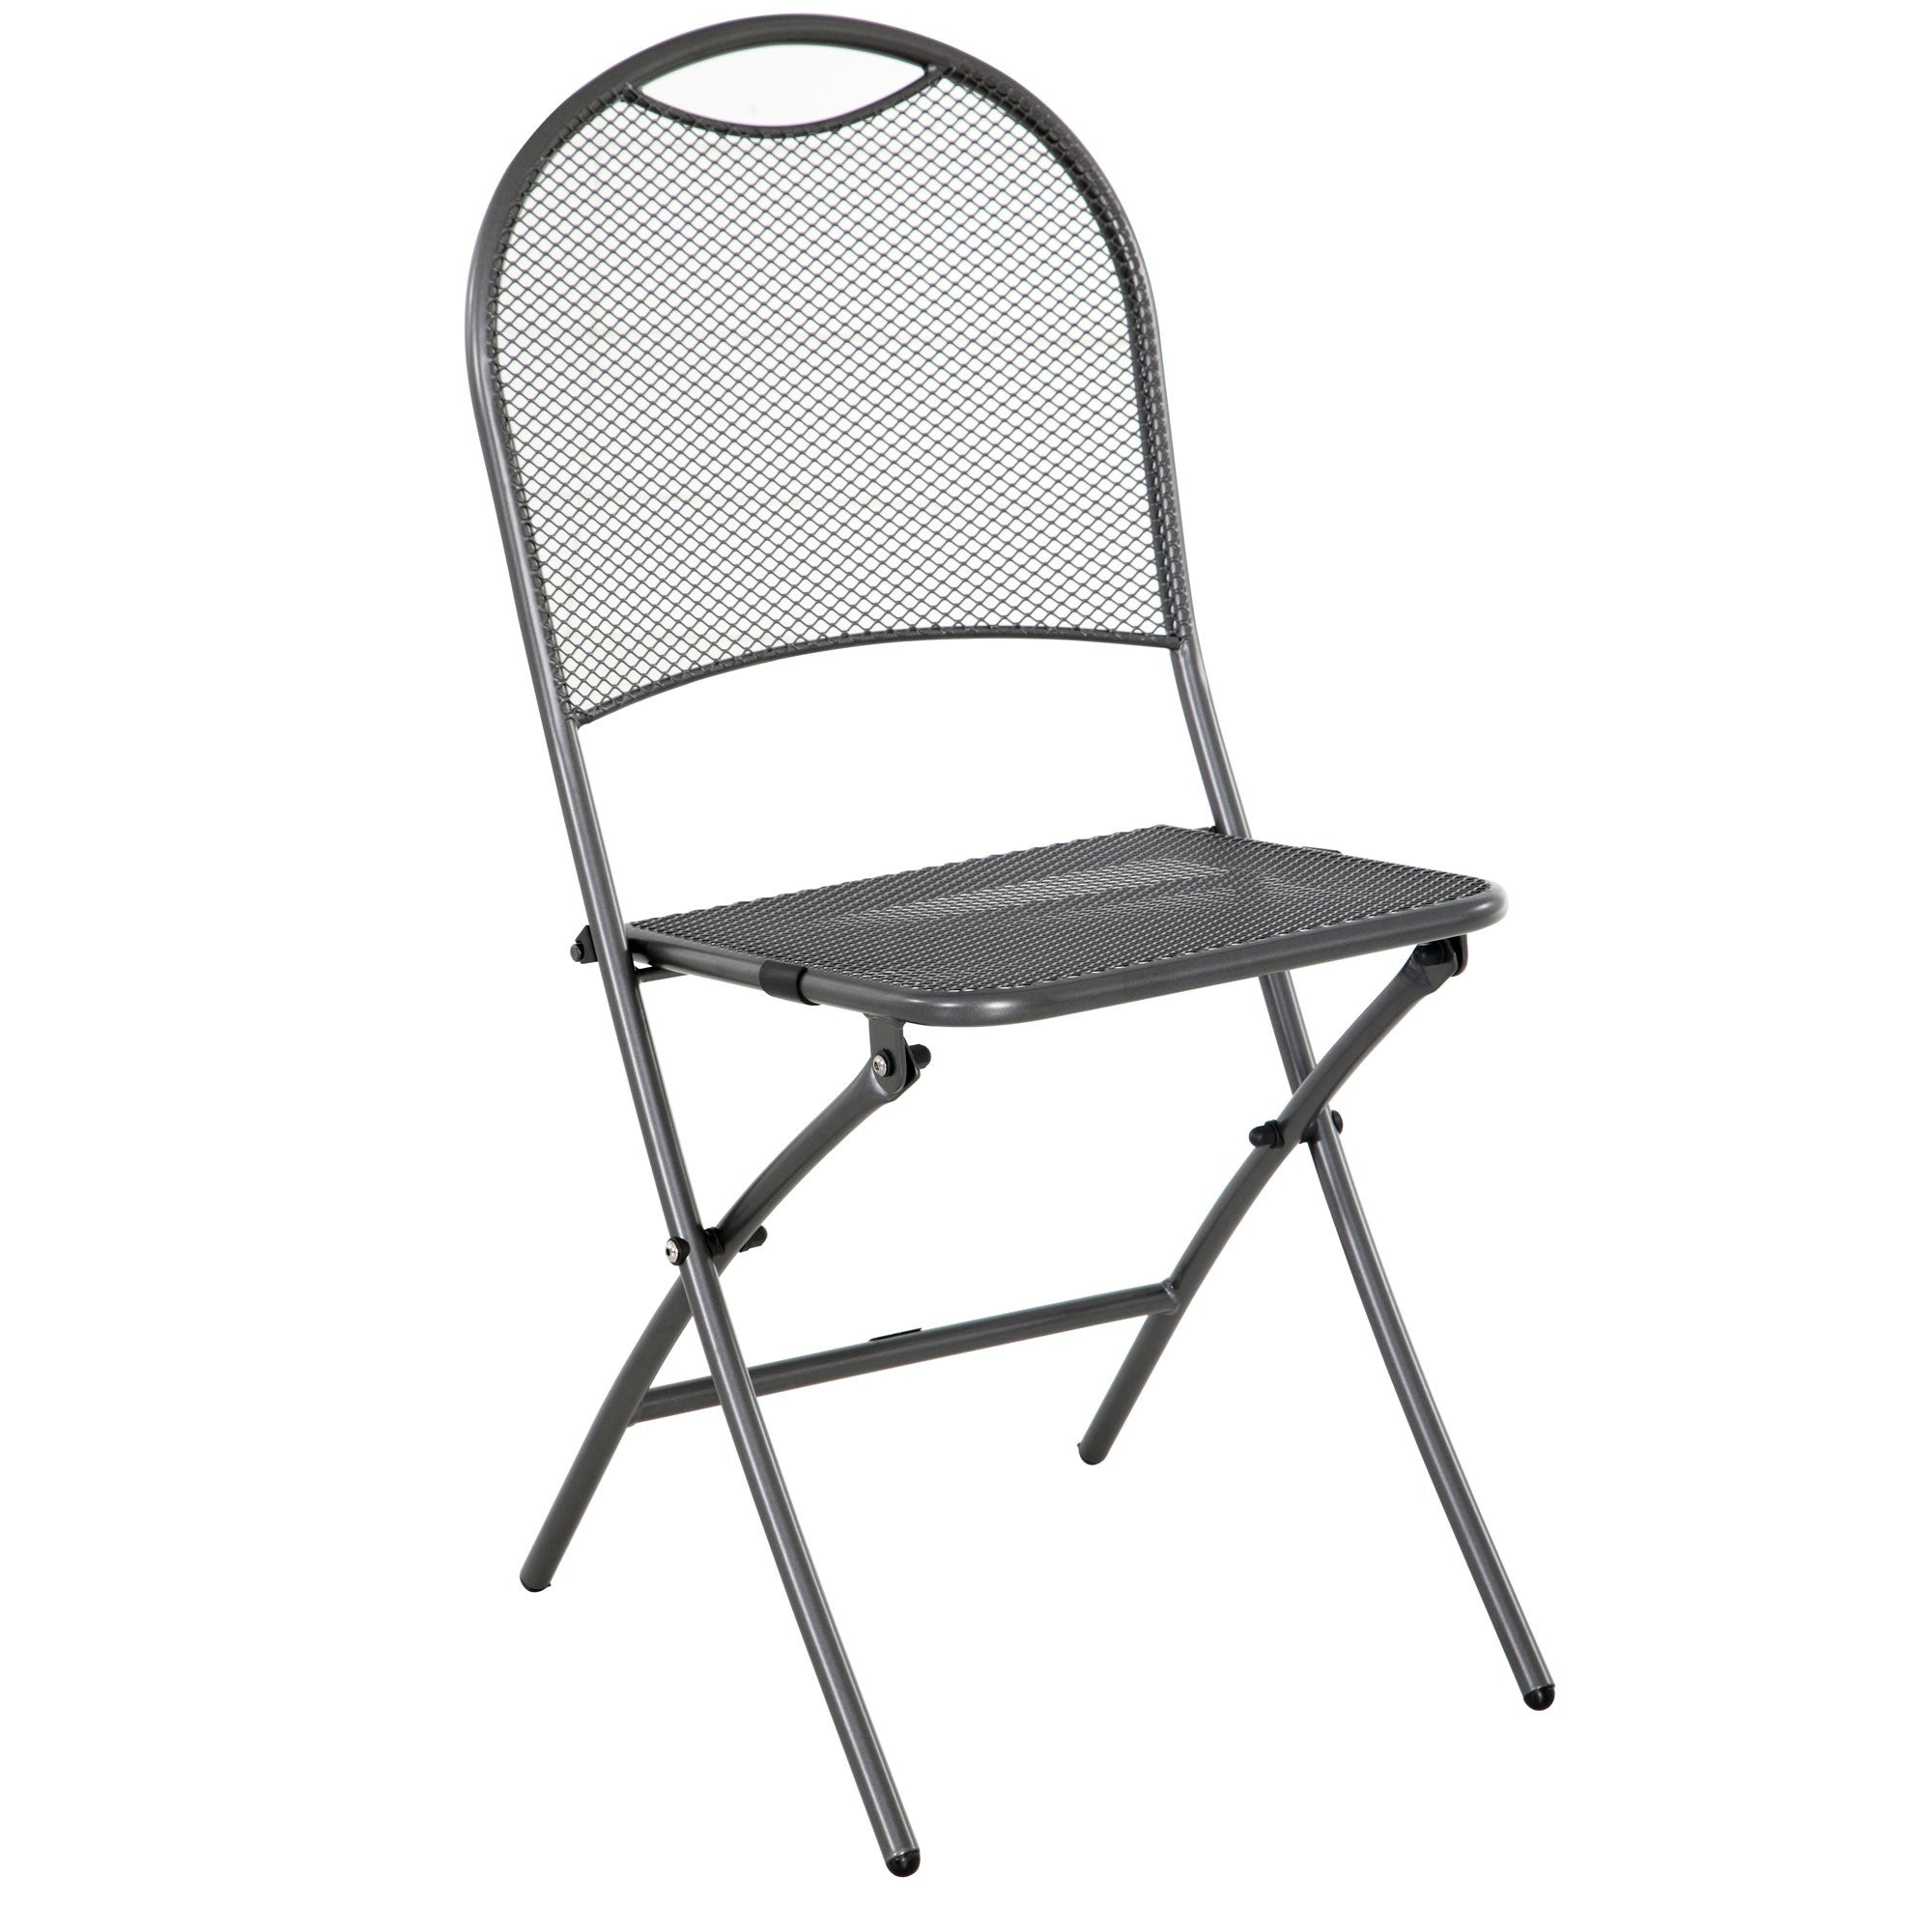 Ludwig 3 Piece Patio Folding Bistro Set With Folding Table, Chairs